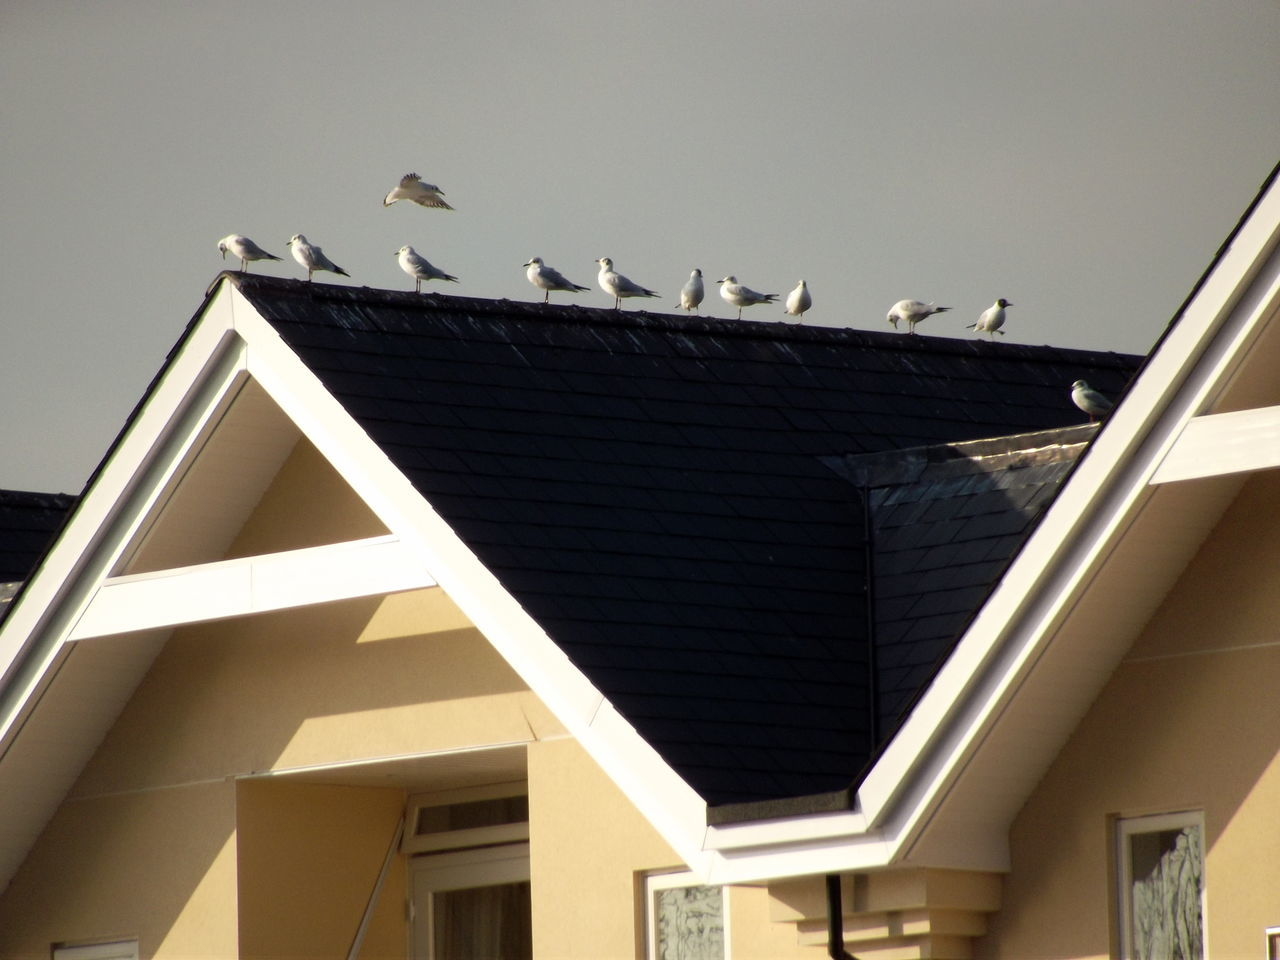 Seagulls Perching On House Against Sky